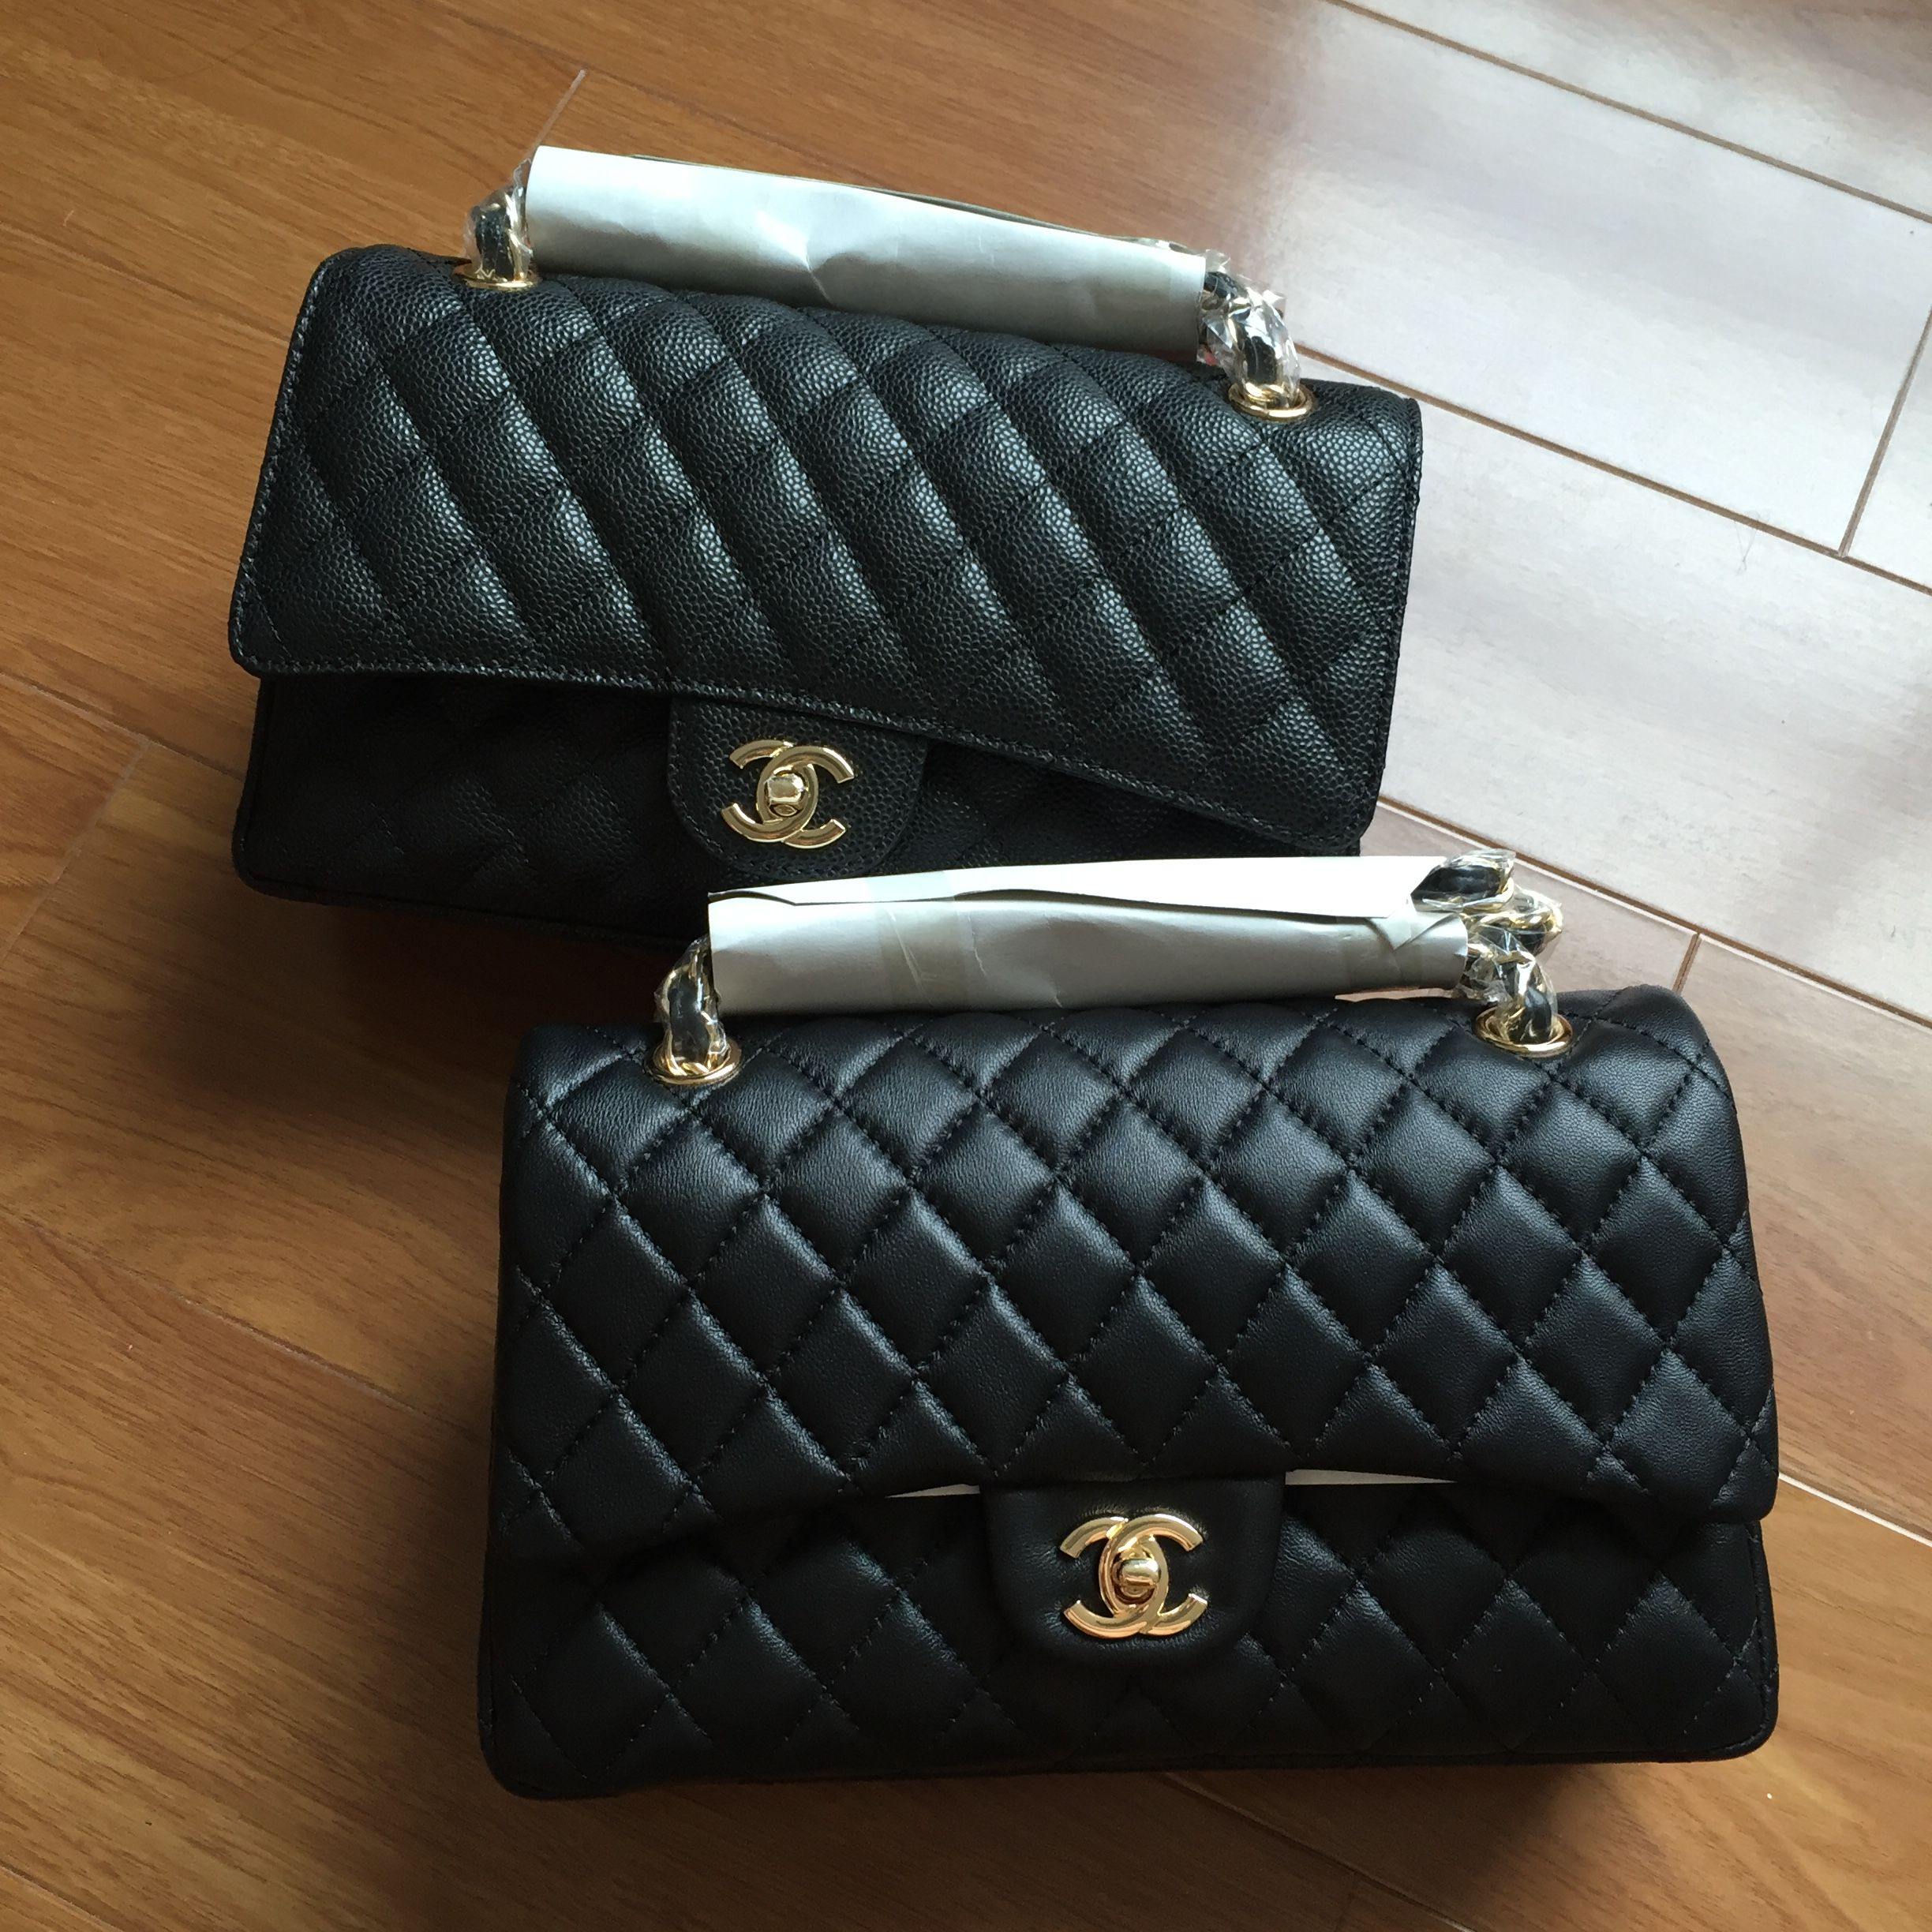 326115a33603 Chanel woman 2.55 double flap bag caviar & lambskin black gold medium size